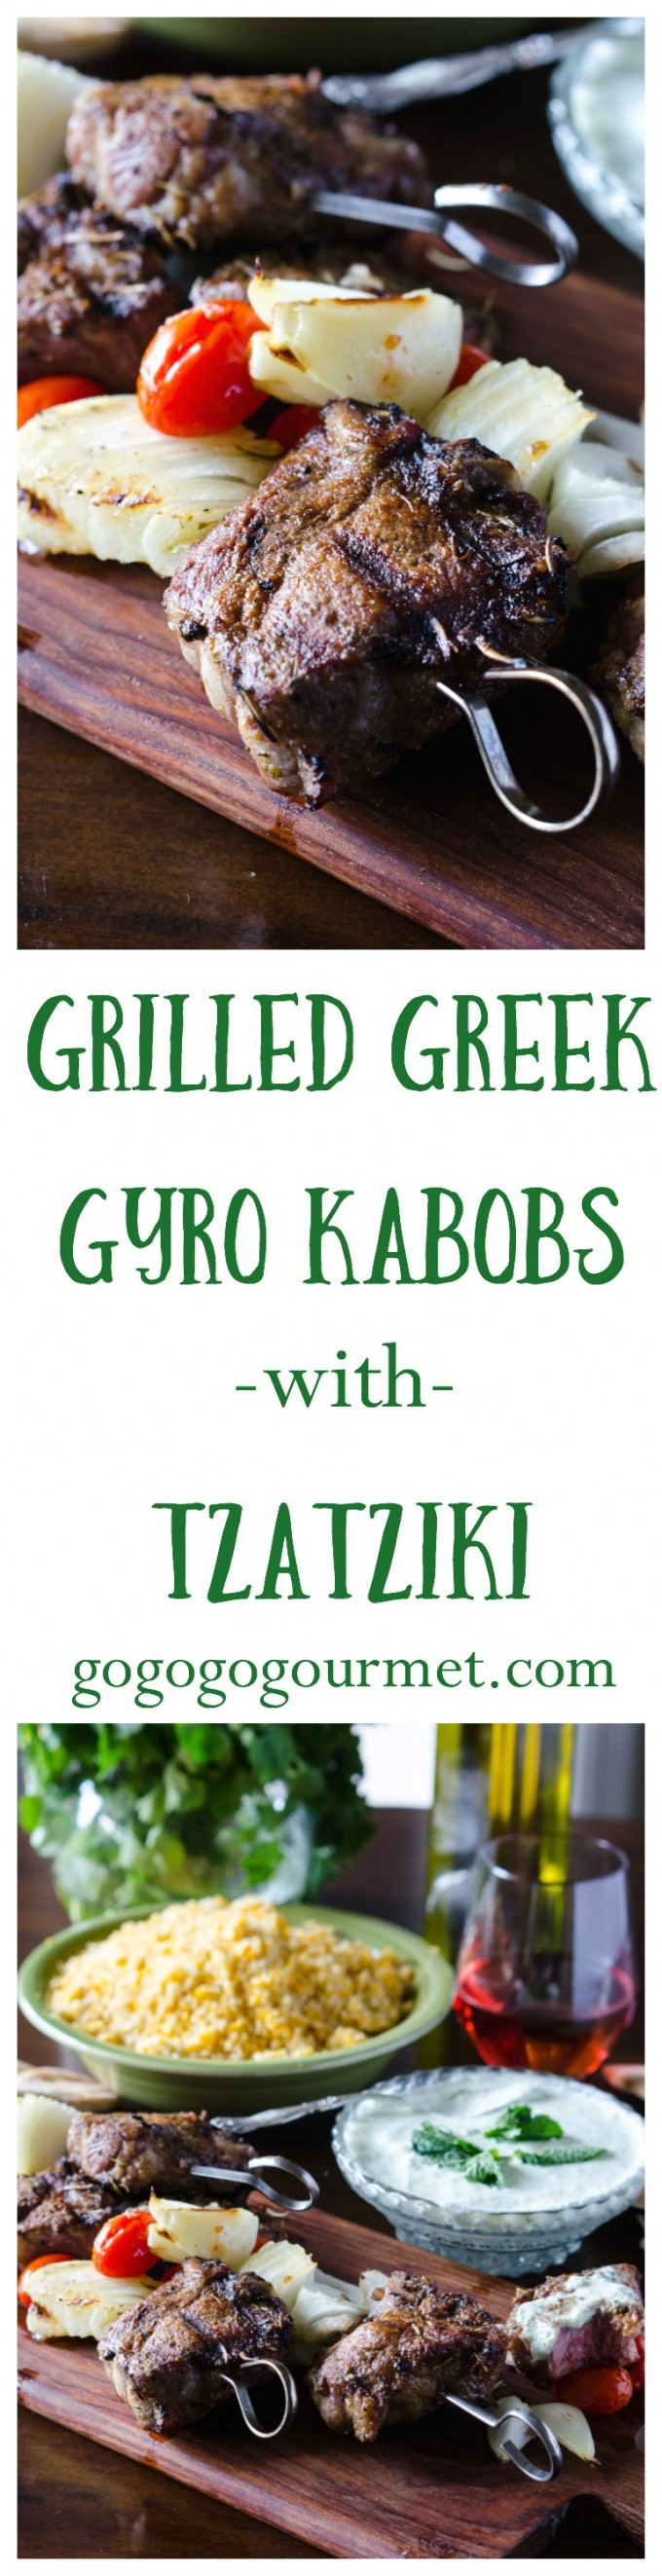 If you love a good gyro, you're going to LOVE this! Gyro seasoning is rubbed on lamb chops, then grilled kabob-style with tomatoes and onions. Don't forget the homemade Tzatziki sauce! Perfect as an appetizer OR dinner. | Go Go Go Gourmet @Go Go Go Gourmet via @gogogogourmet